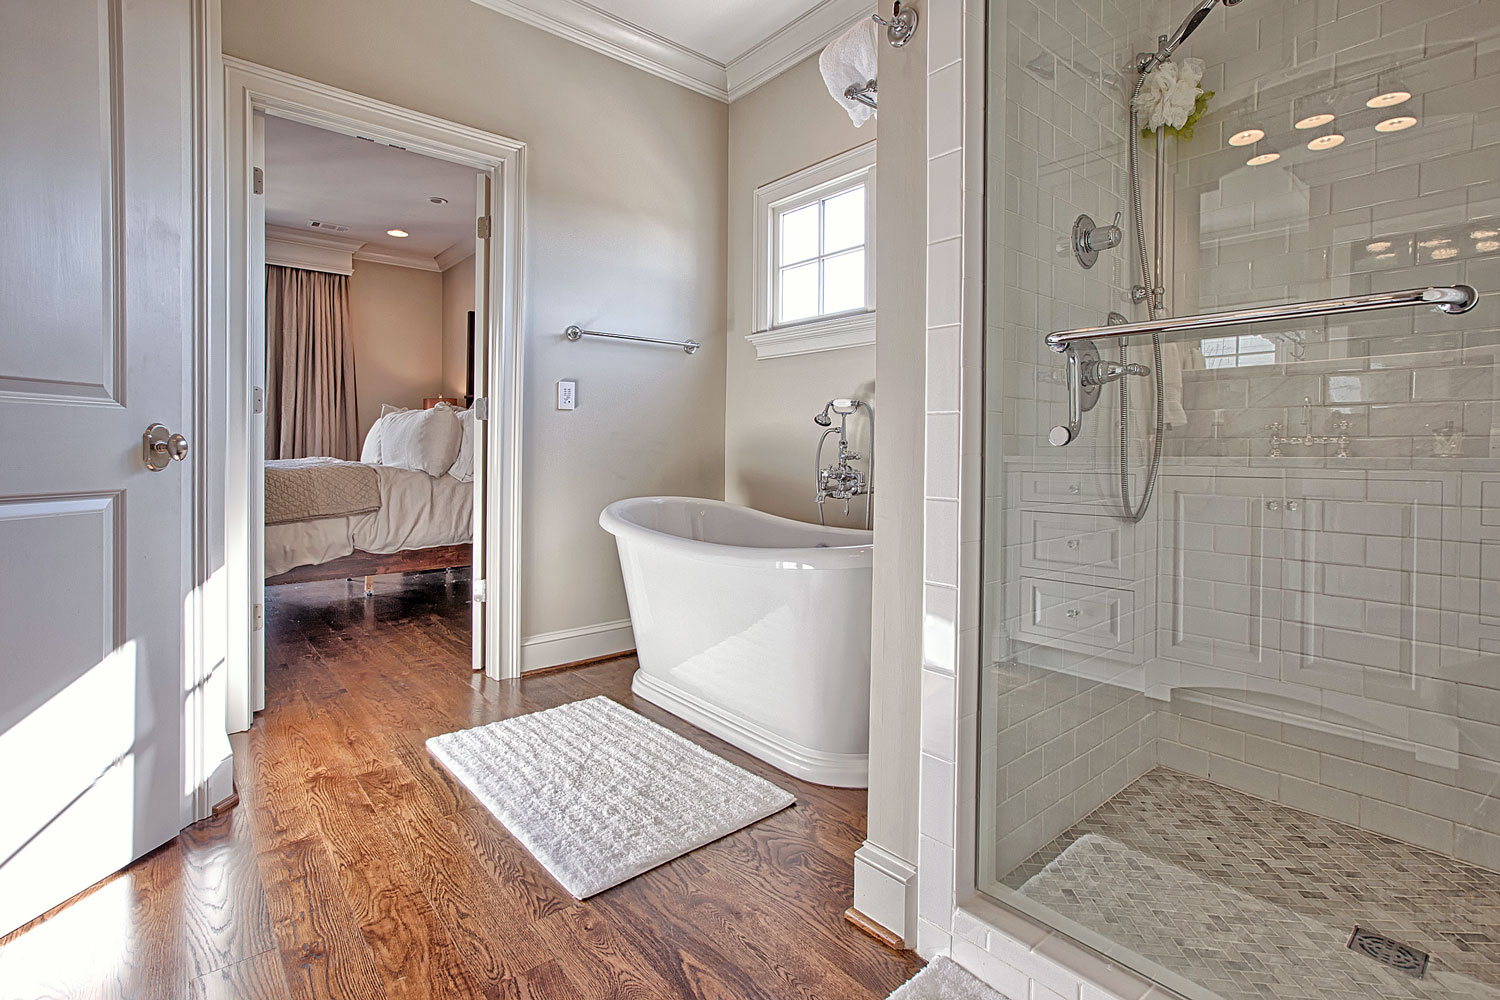 A traditional bathroom is located within a home in a historic district of Tuscaloosa, AL.